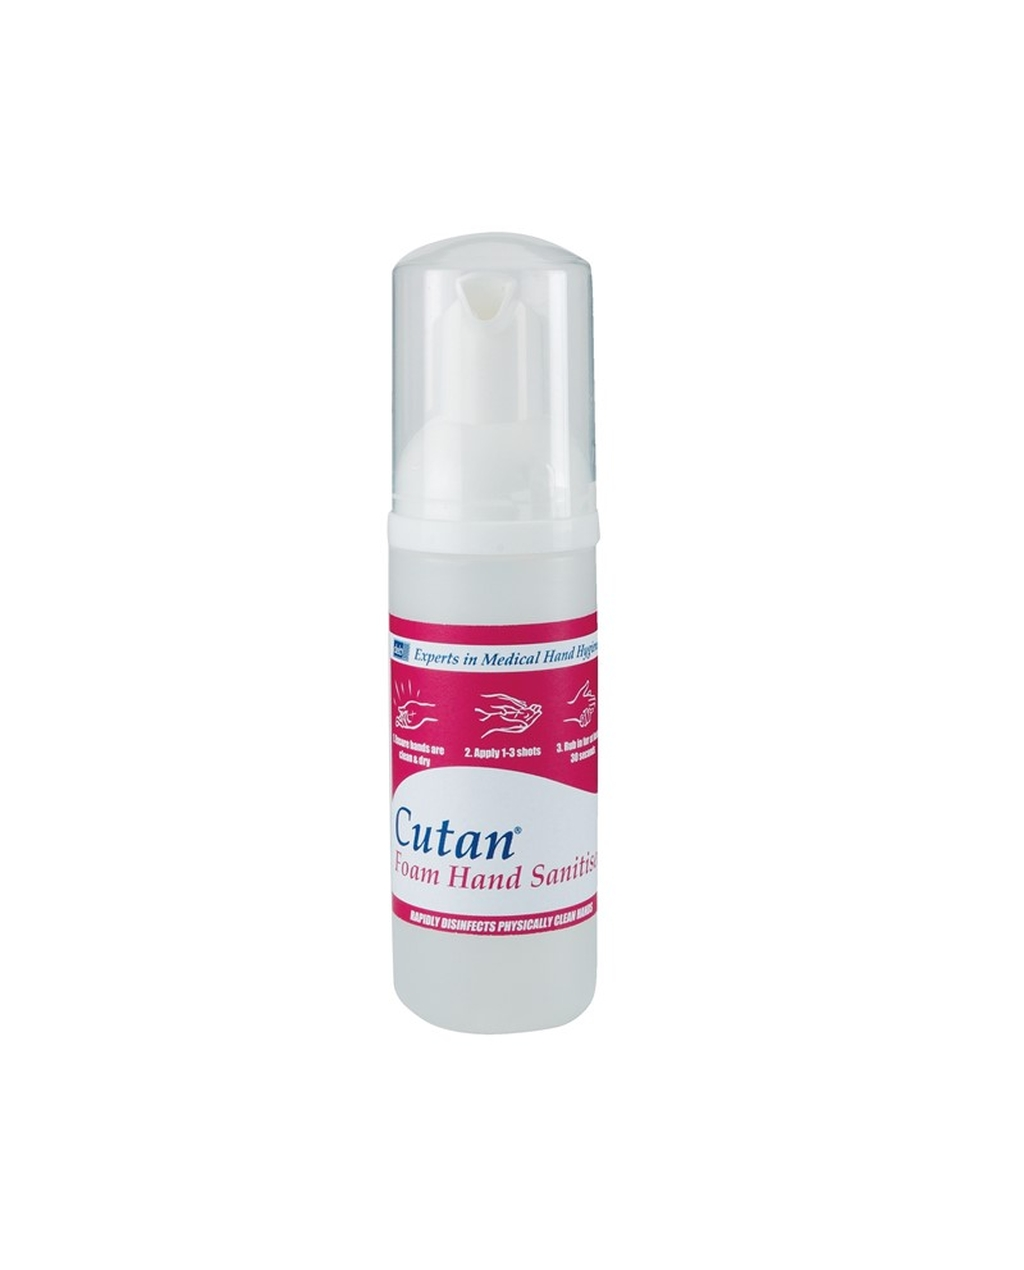 Cutan Foam Hand Sanitiser 47ml